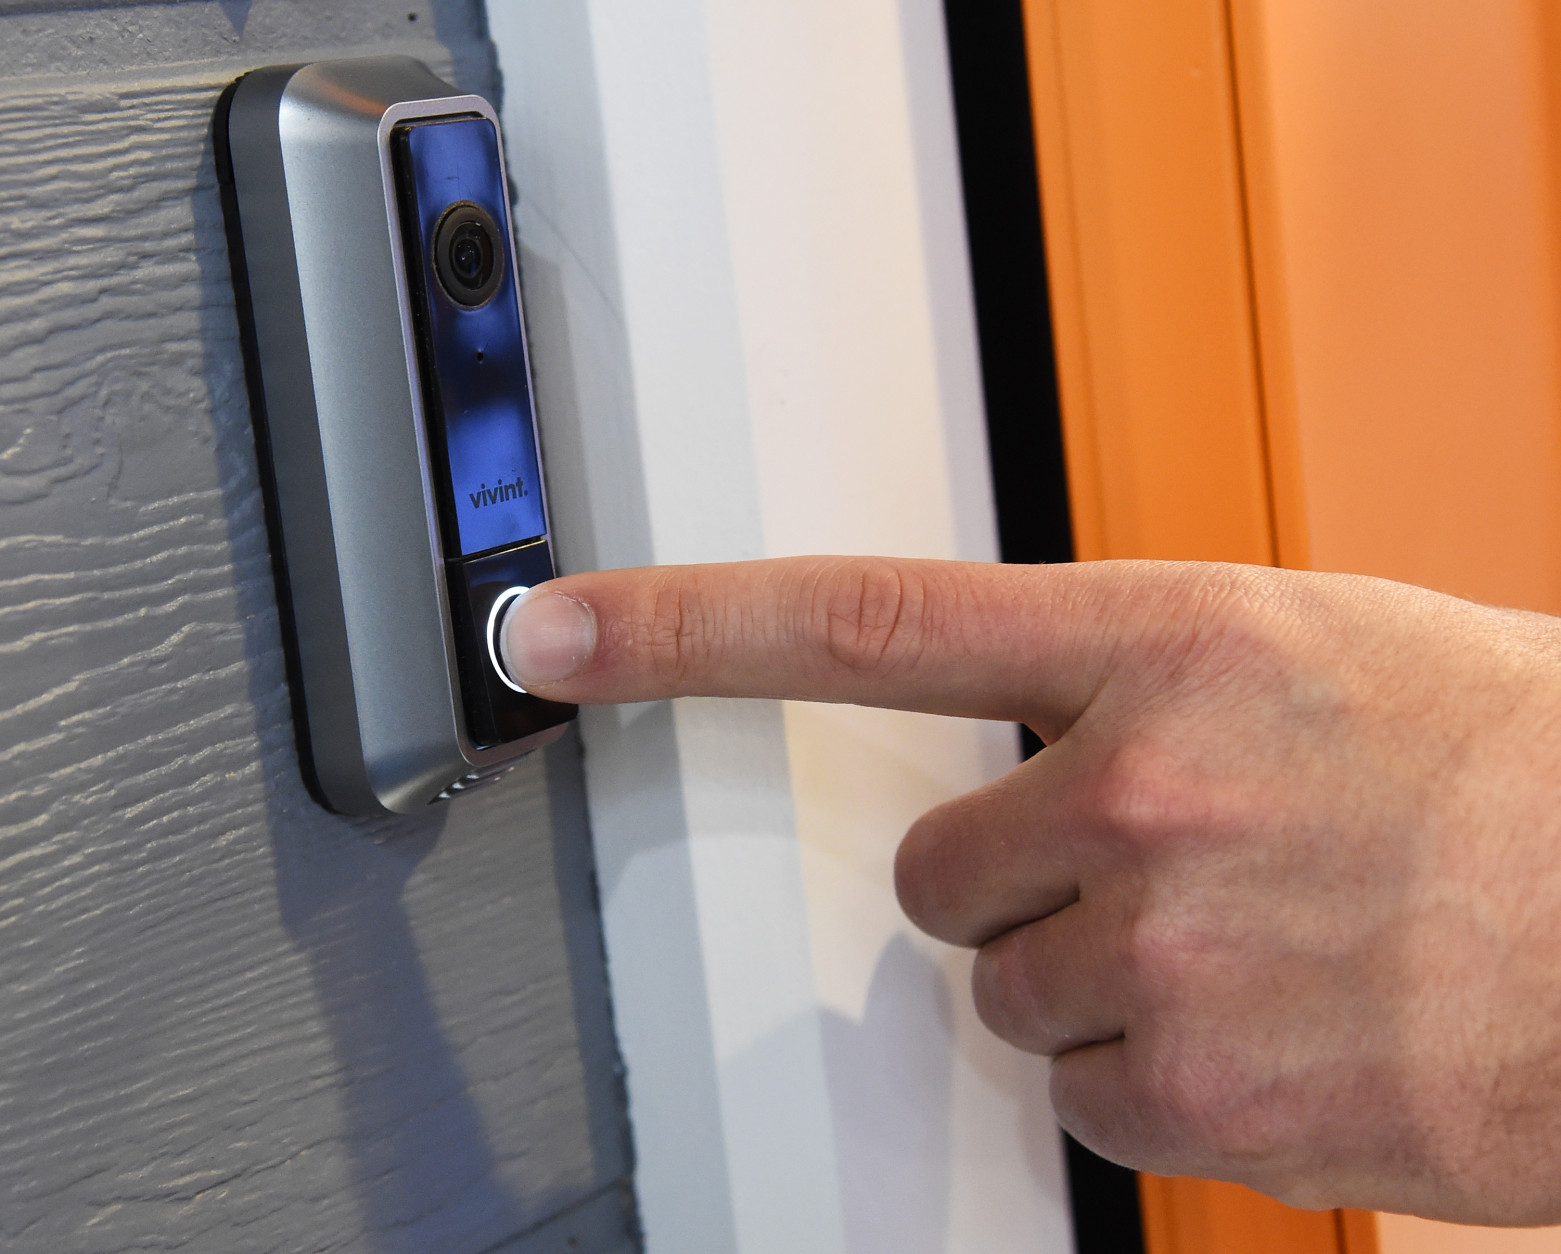 LAS VEGAS, NV - JANUARY 07:  The Vivint Doorbell Camera is displayed at CES 2016 at the Sands Expo and Convention Center on January 7, 2016 in Las Vegas, Nevada. It works with the Vivint Sky smart home system and features two-way talk via a built-in microphone and speaker, a 180-degree camera lens with night vision, and on-demand access to 30-second video clips it records. Customers able to see who is at the door on their smartphones can lock or unlock the door remotely. CES, the world's largest annual consumer technology trade show, runs through January 9 and features 3,600 exhibitors showing off their latest products and services to more than 150,000 attendees.  (Photo by Ethan Miller/Getty Images)